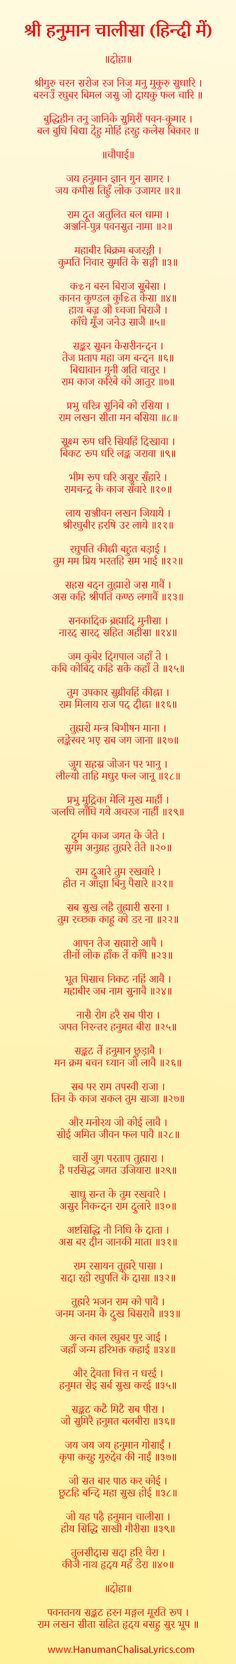 hanuman chalisa in hindi images